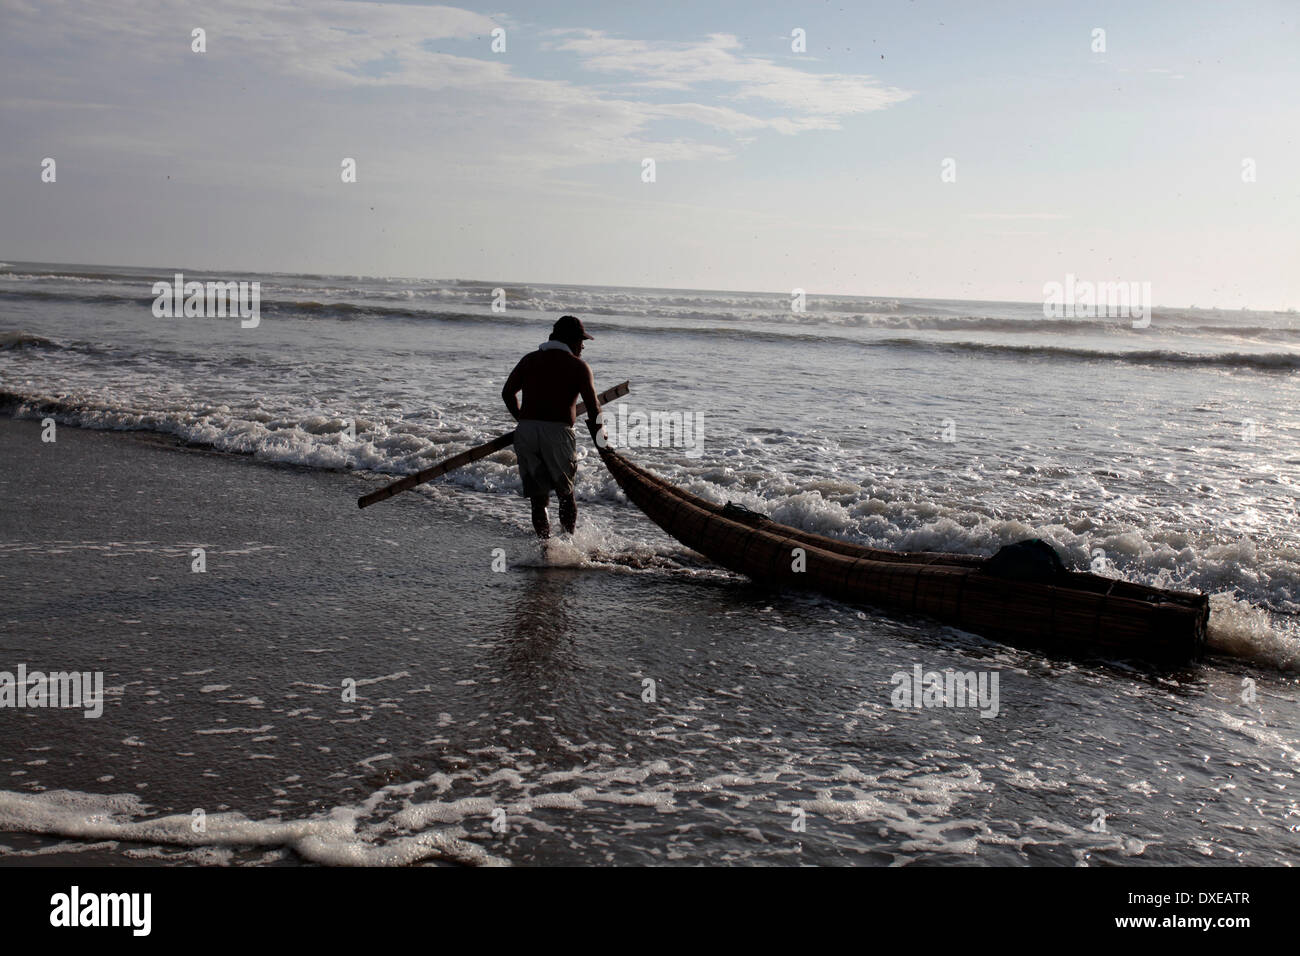 PIMENTEL, PERU - MARCH 22: Luis a fisherman in 'Totora Horses' is seen on the beach of Pimentel preparing his departure to start your fishing trip in Pacific Ocean, about 800 kilometers north of Lima in Pimentel, Peru, Saturday, March 22, 2014. Luis is 35 years in the art of fishing, live around with his wife and children, who supports with money from direct sales of products fresh from the sea. The 'Totora Horses' are Built with cattail rushes like the ethnic group of the Inca empire Mochica already made five centuries ago. The canoes are used daily to go deep into the ocean, to return after  - Stock Image